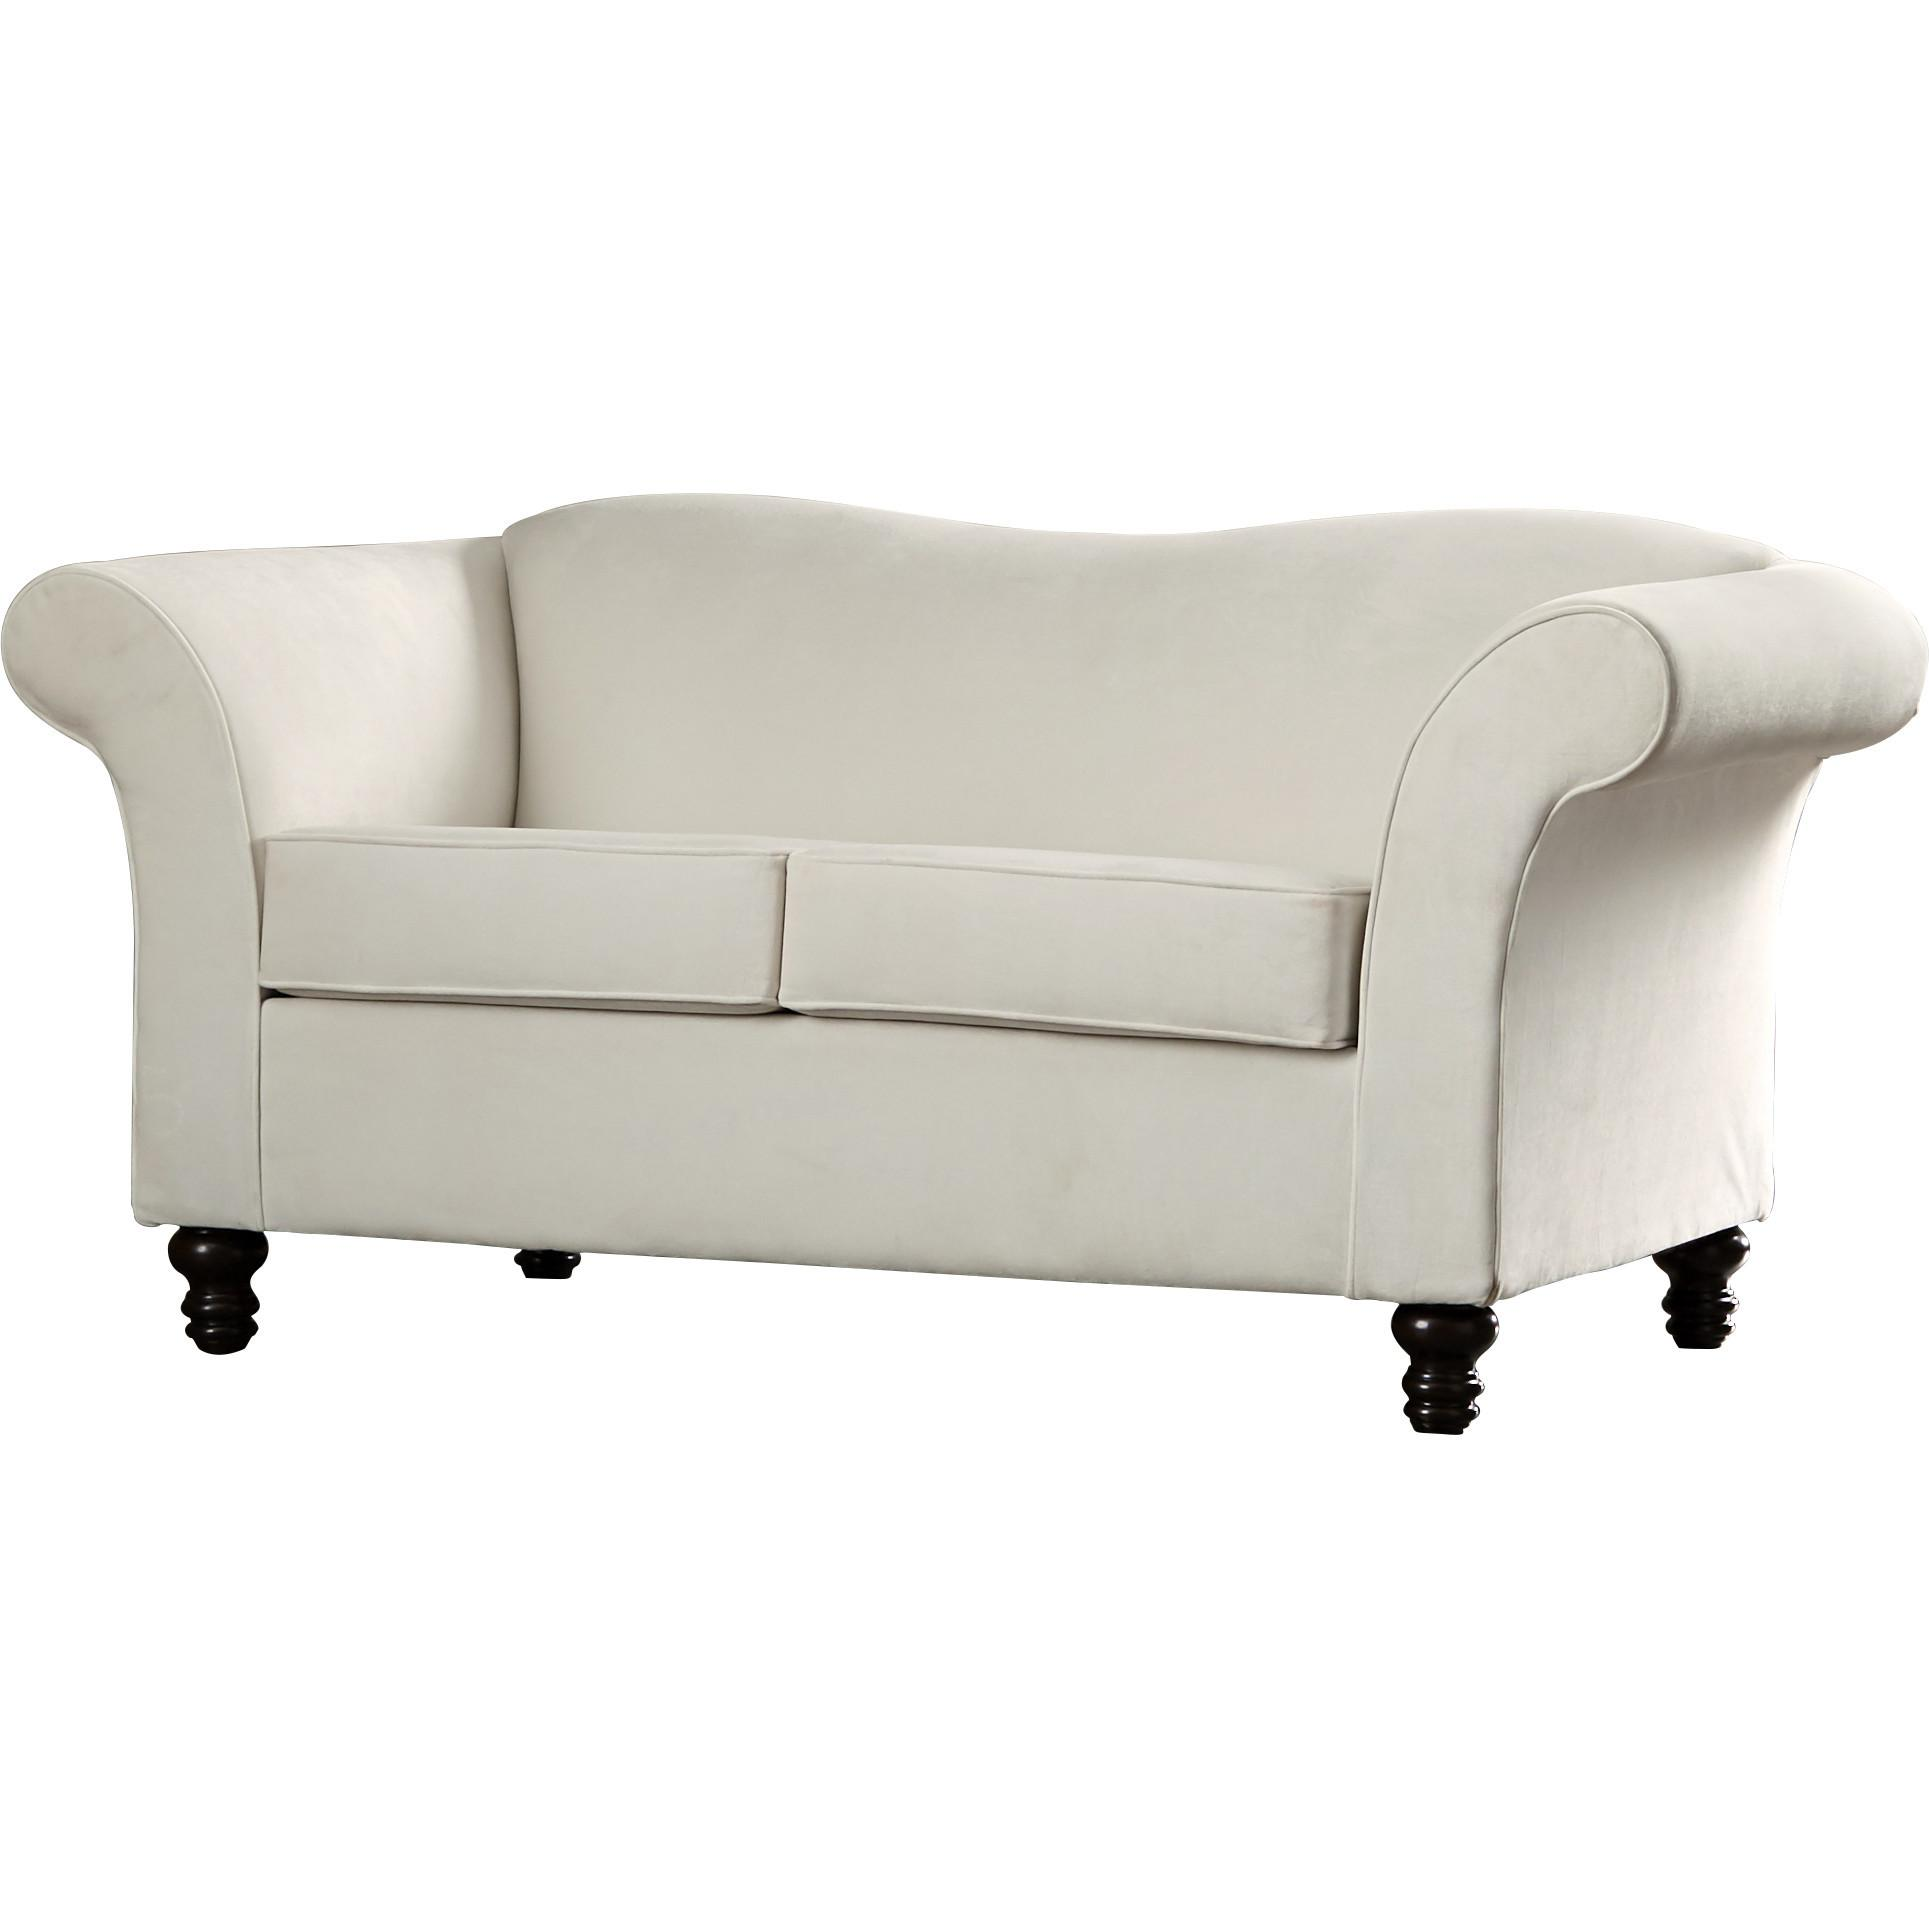 Three Posts Sophia Modular Loveseat